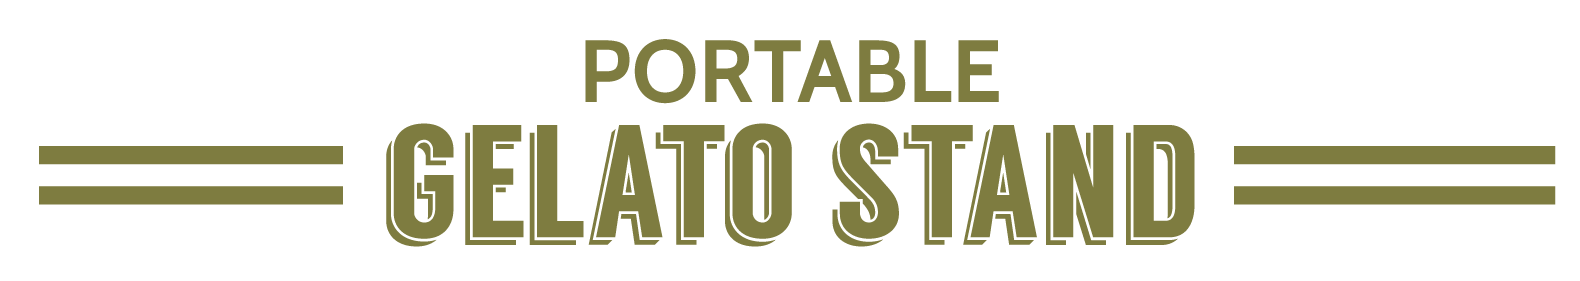 portable_gelato_stand_title.png